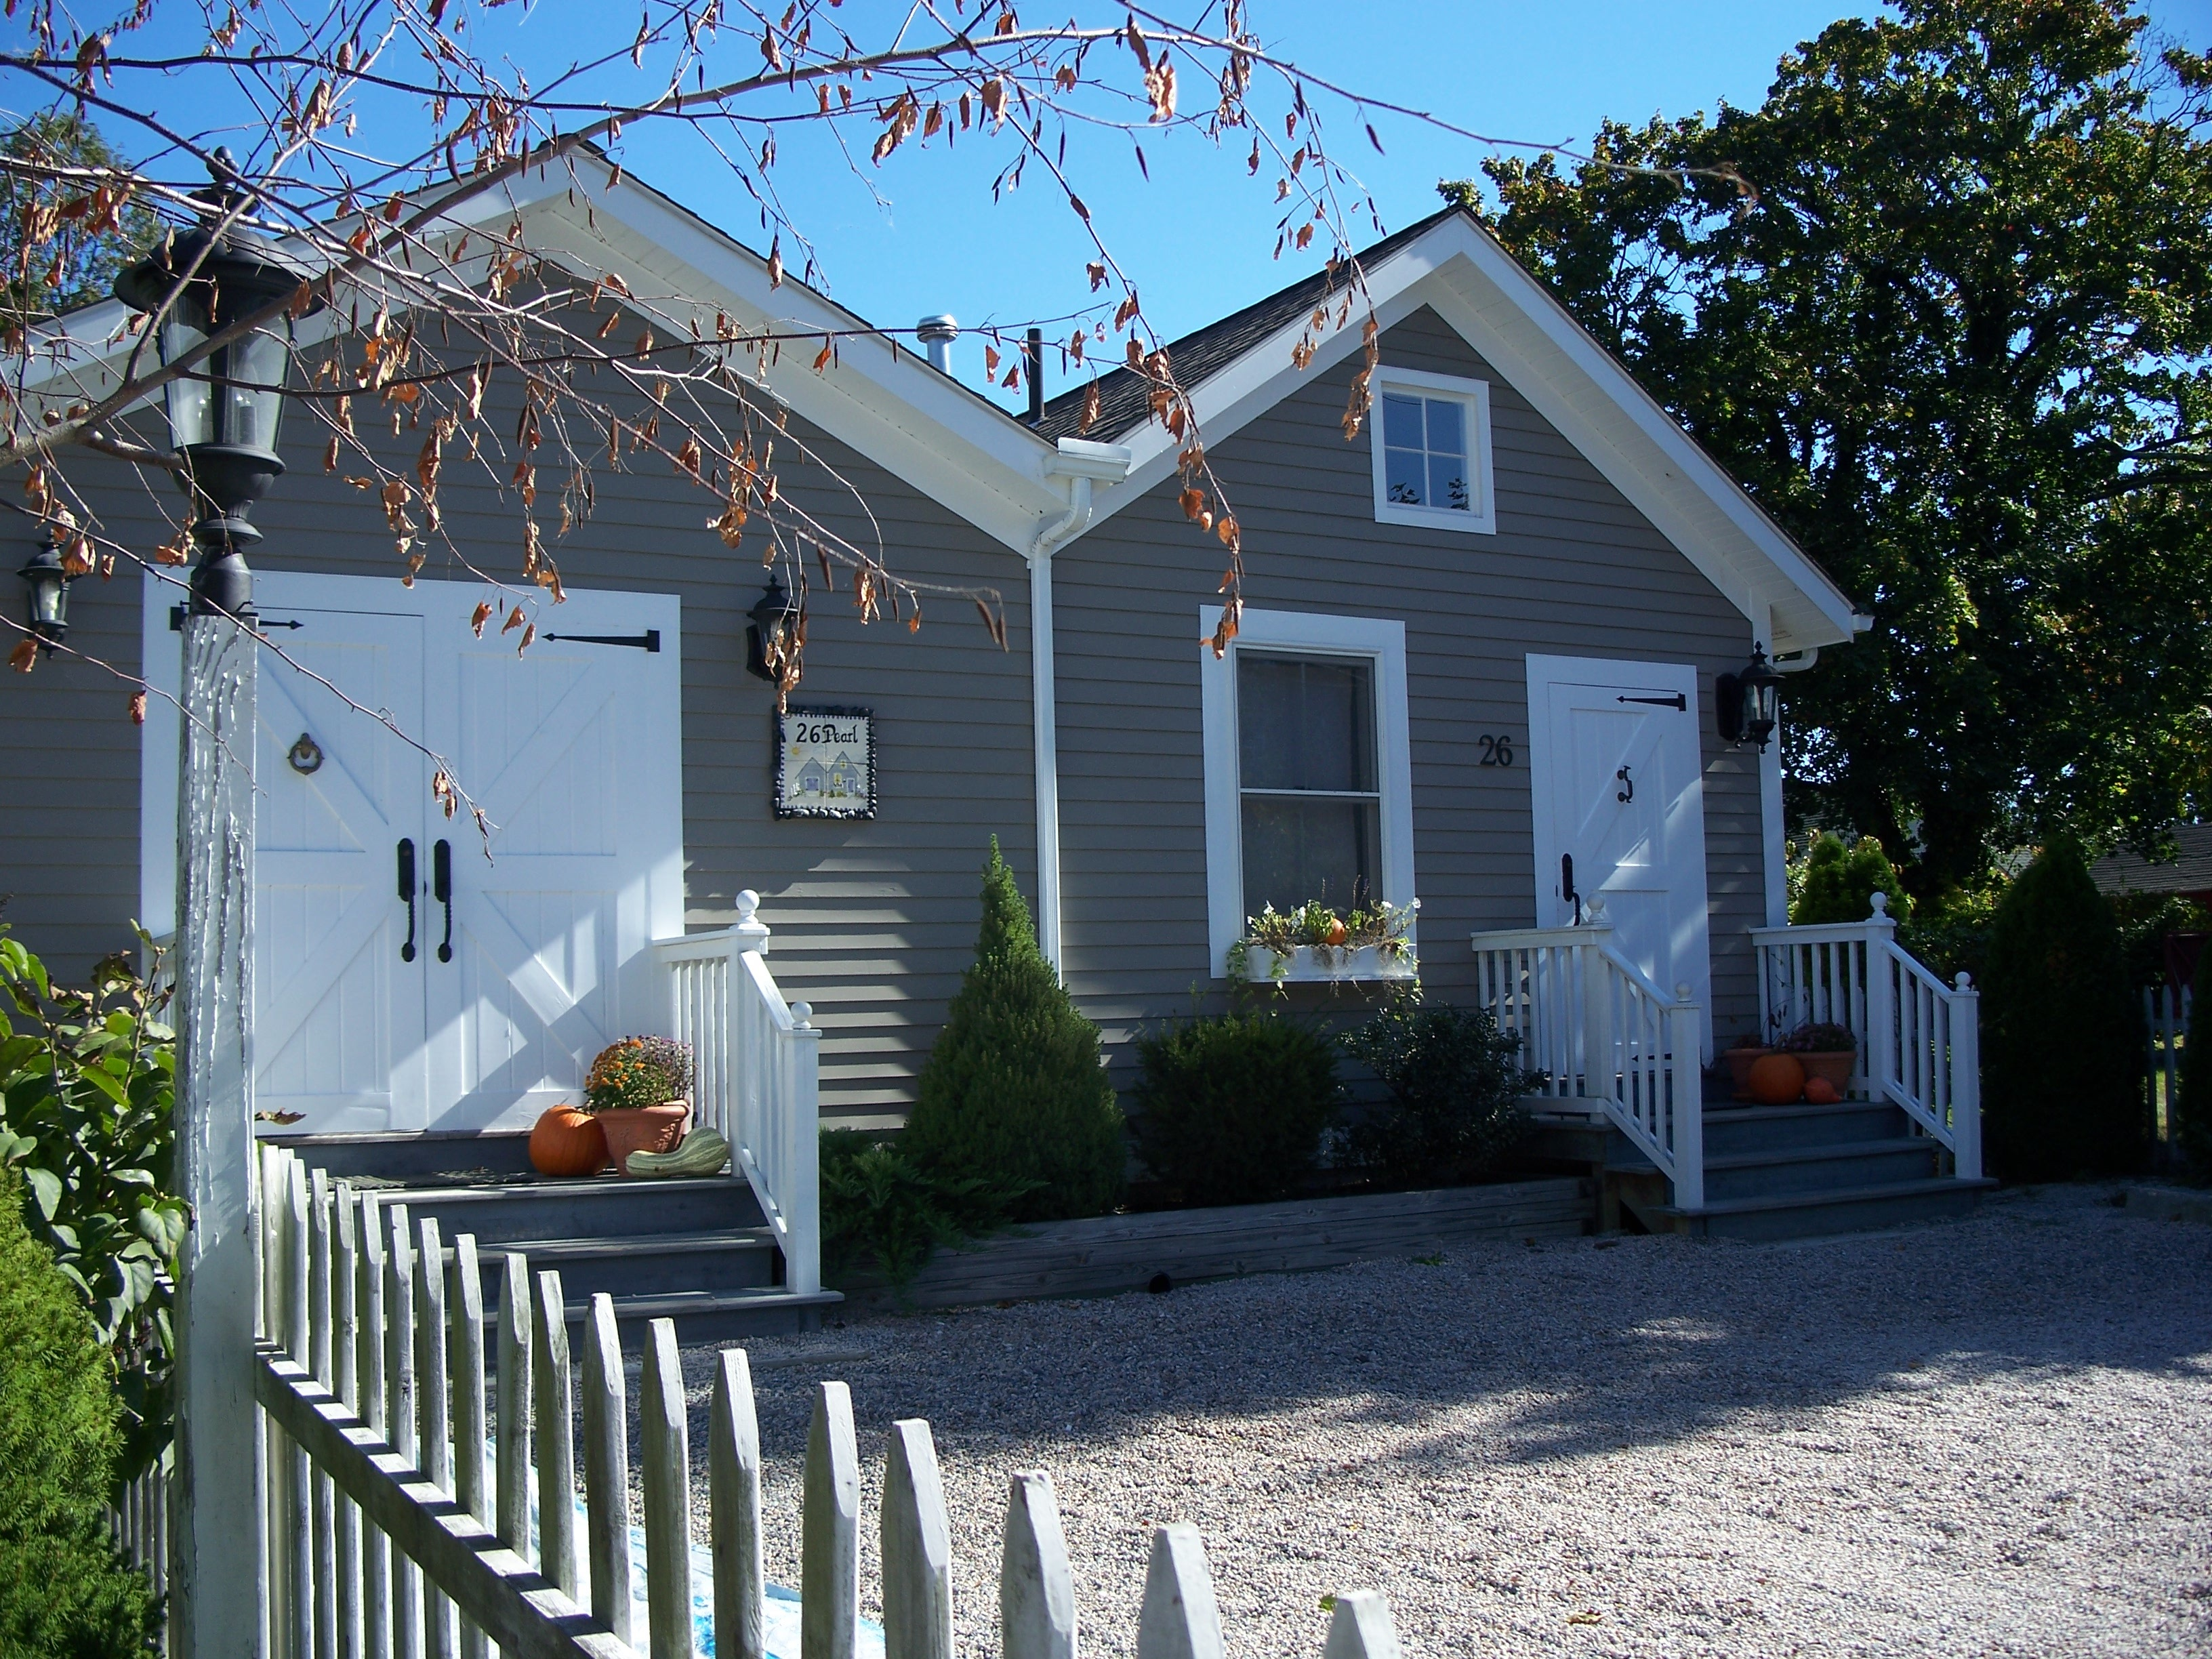 The Carriage House at 26 Pearl